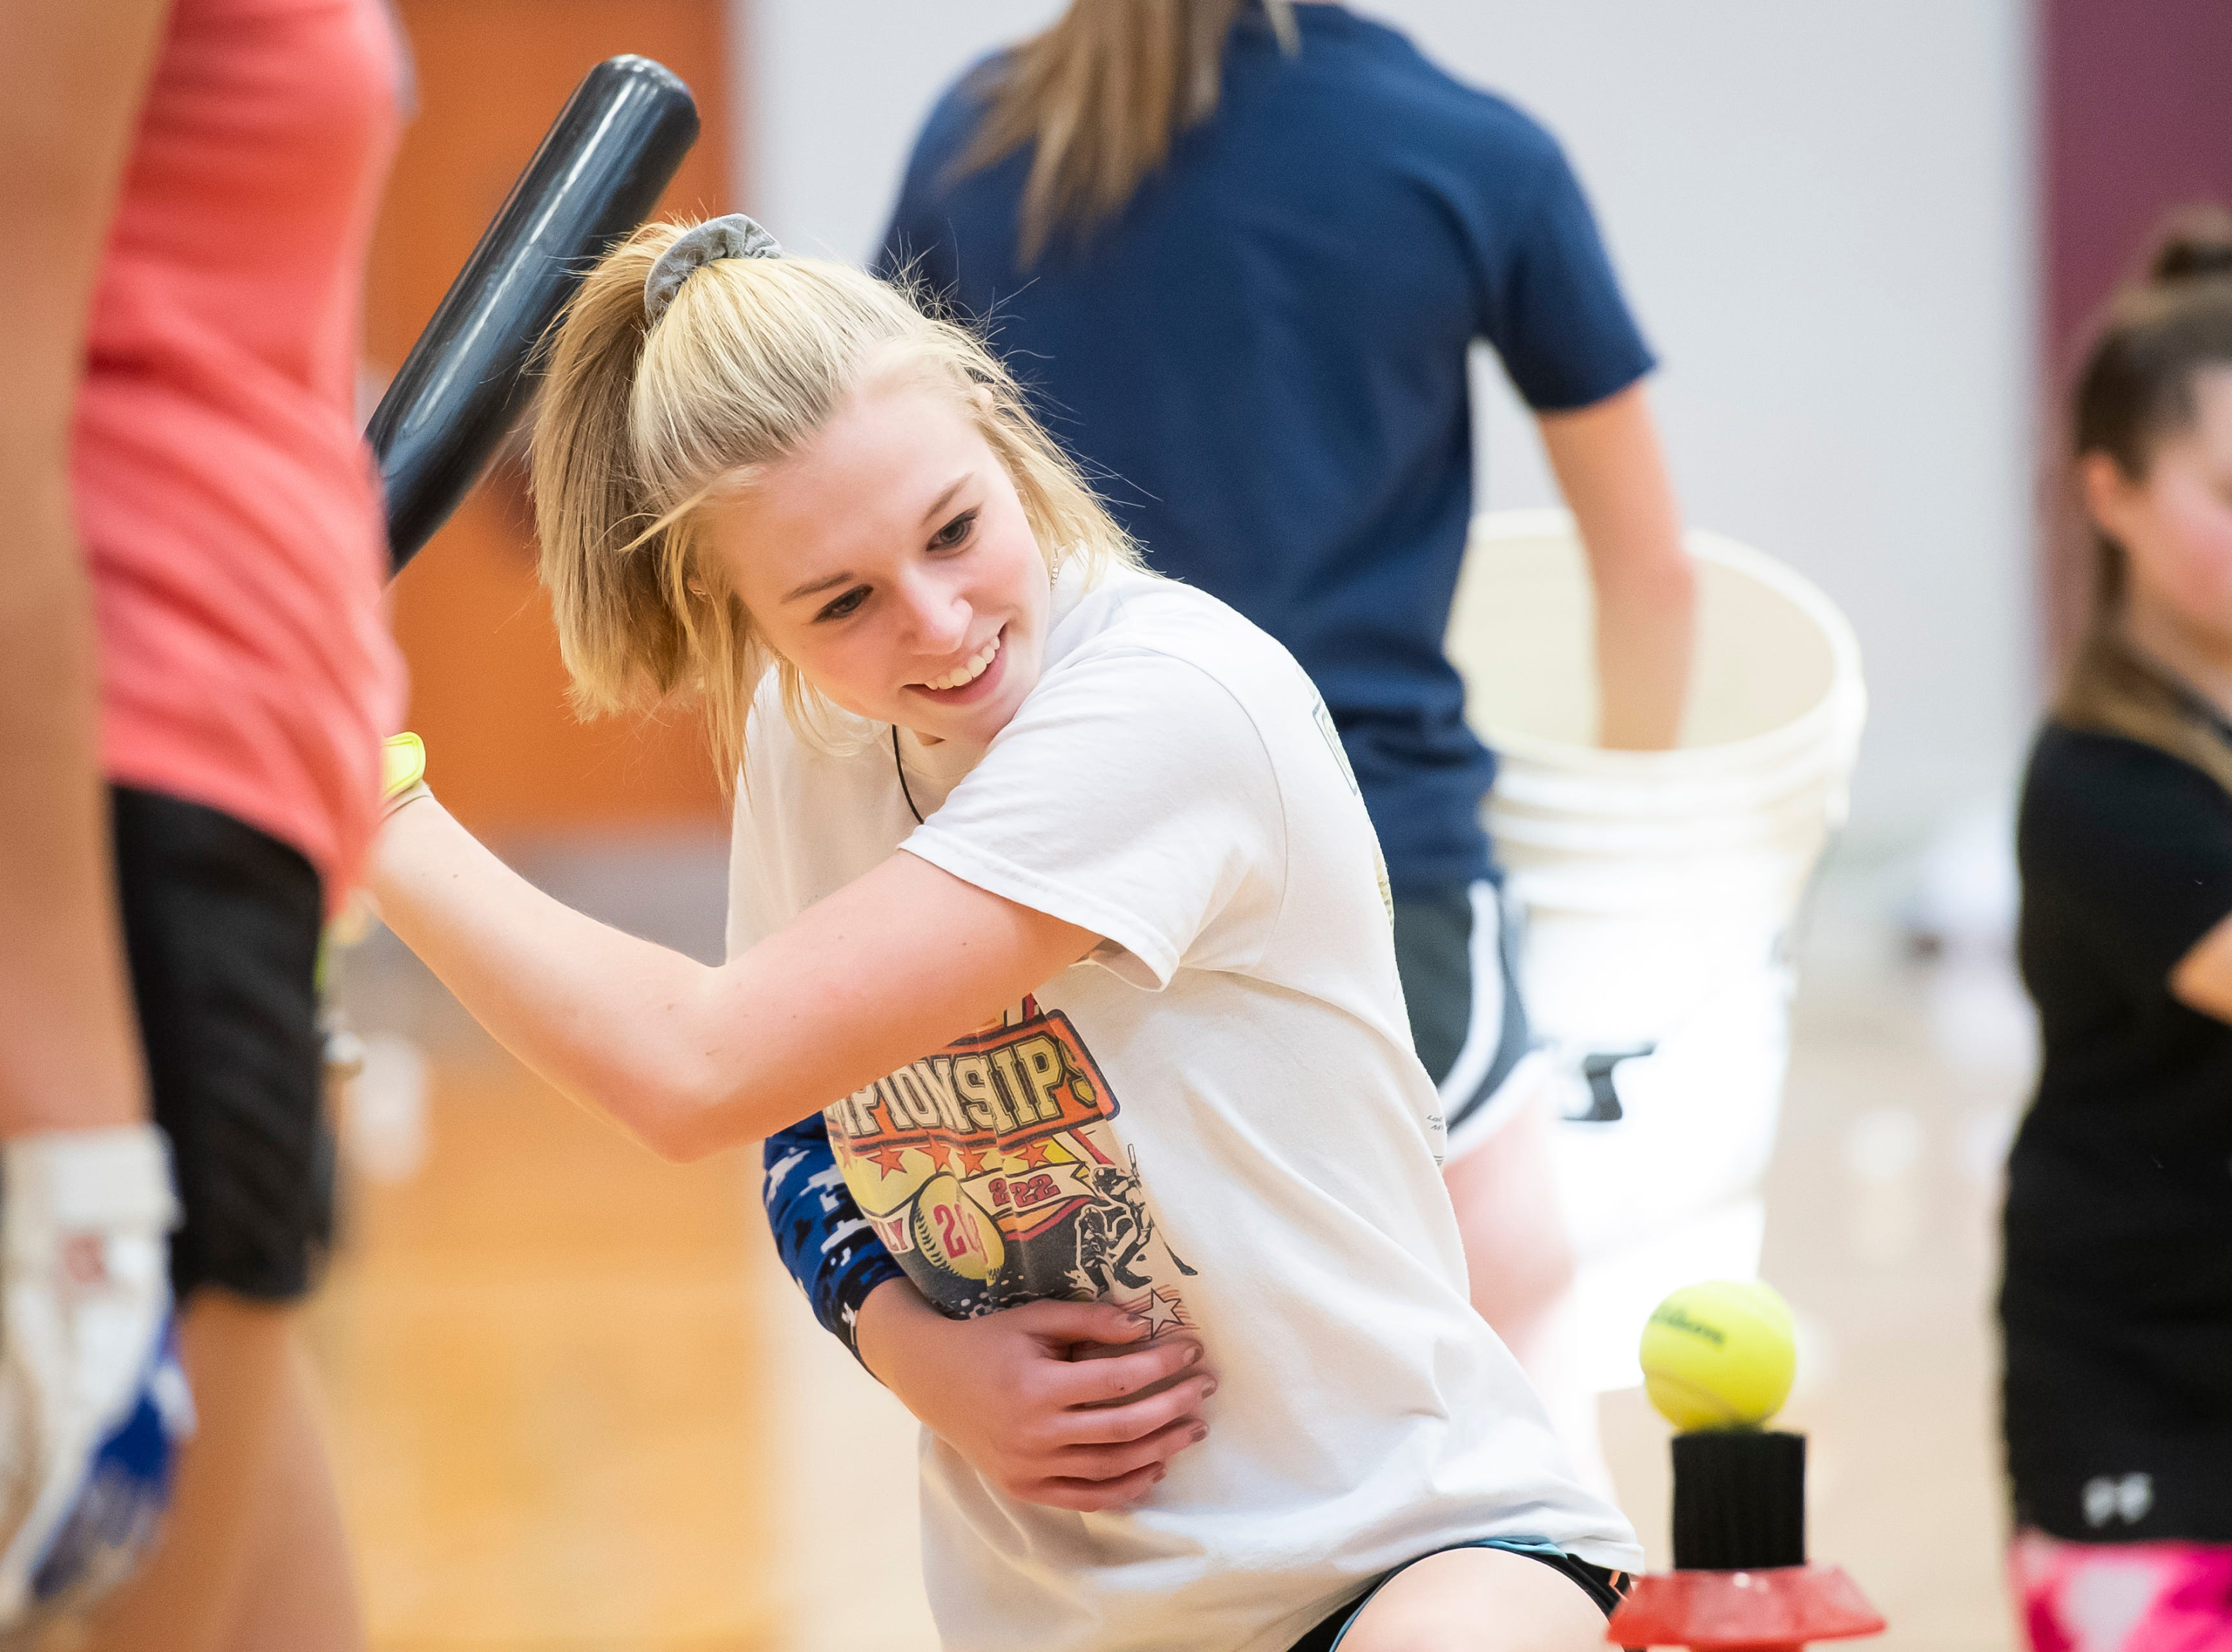 Gettysburg's Abby Hurst prepares to swing during a kneeling backhand tee drill on the first day of softball practice inside the Gettysburg High School gym Monday, March 4, 2019.